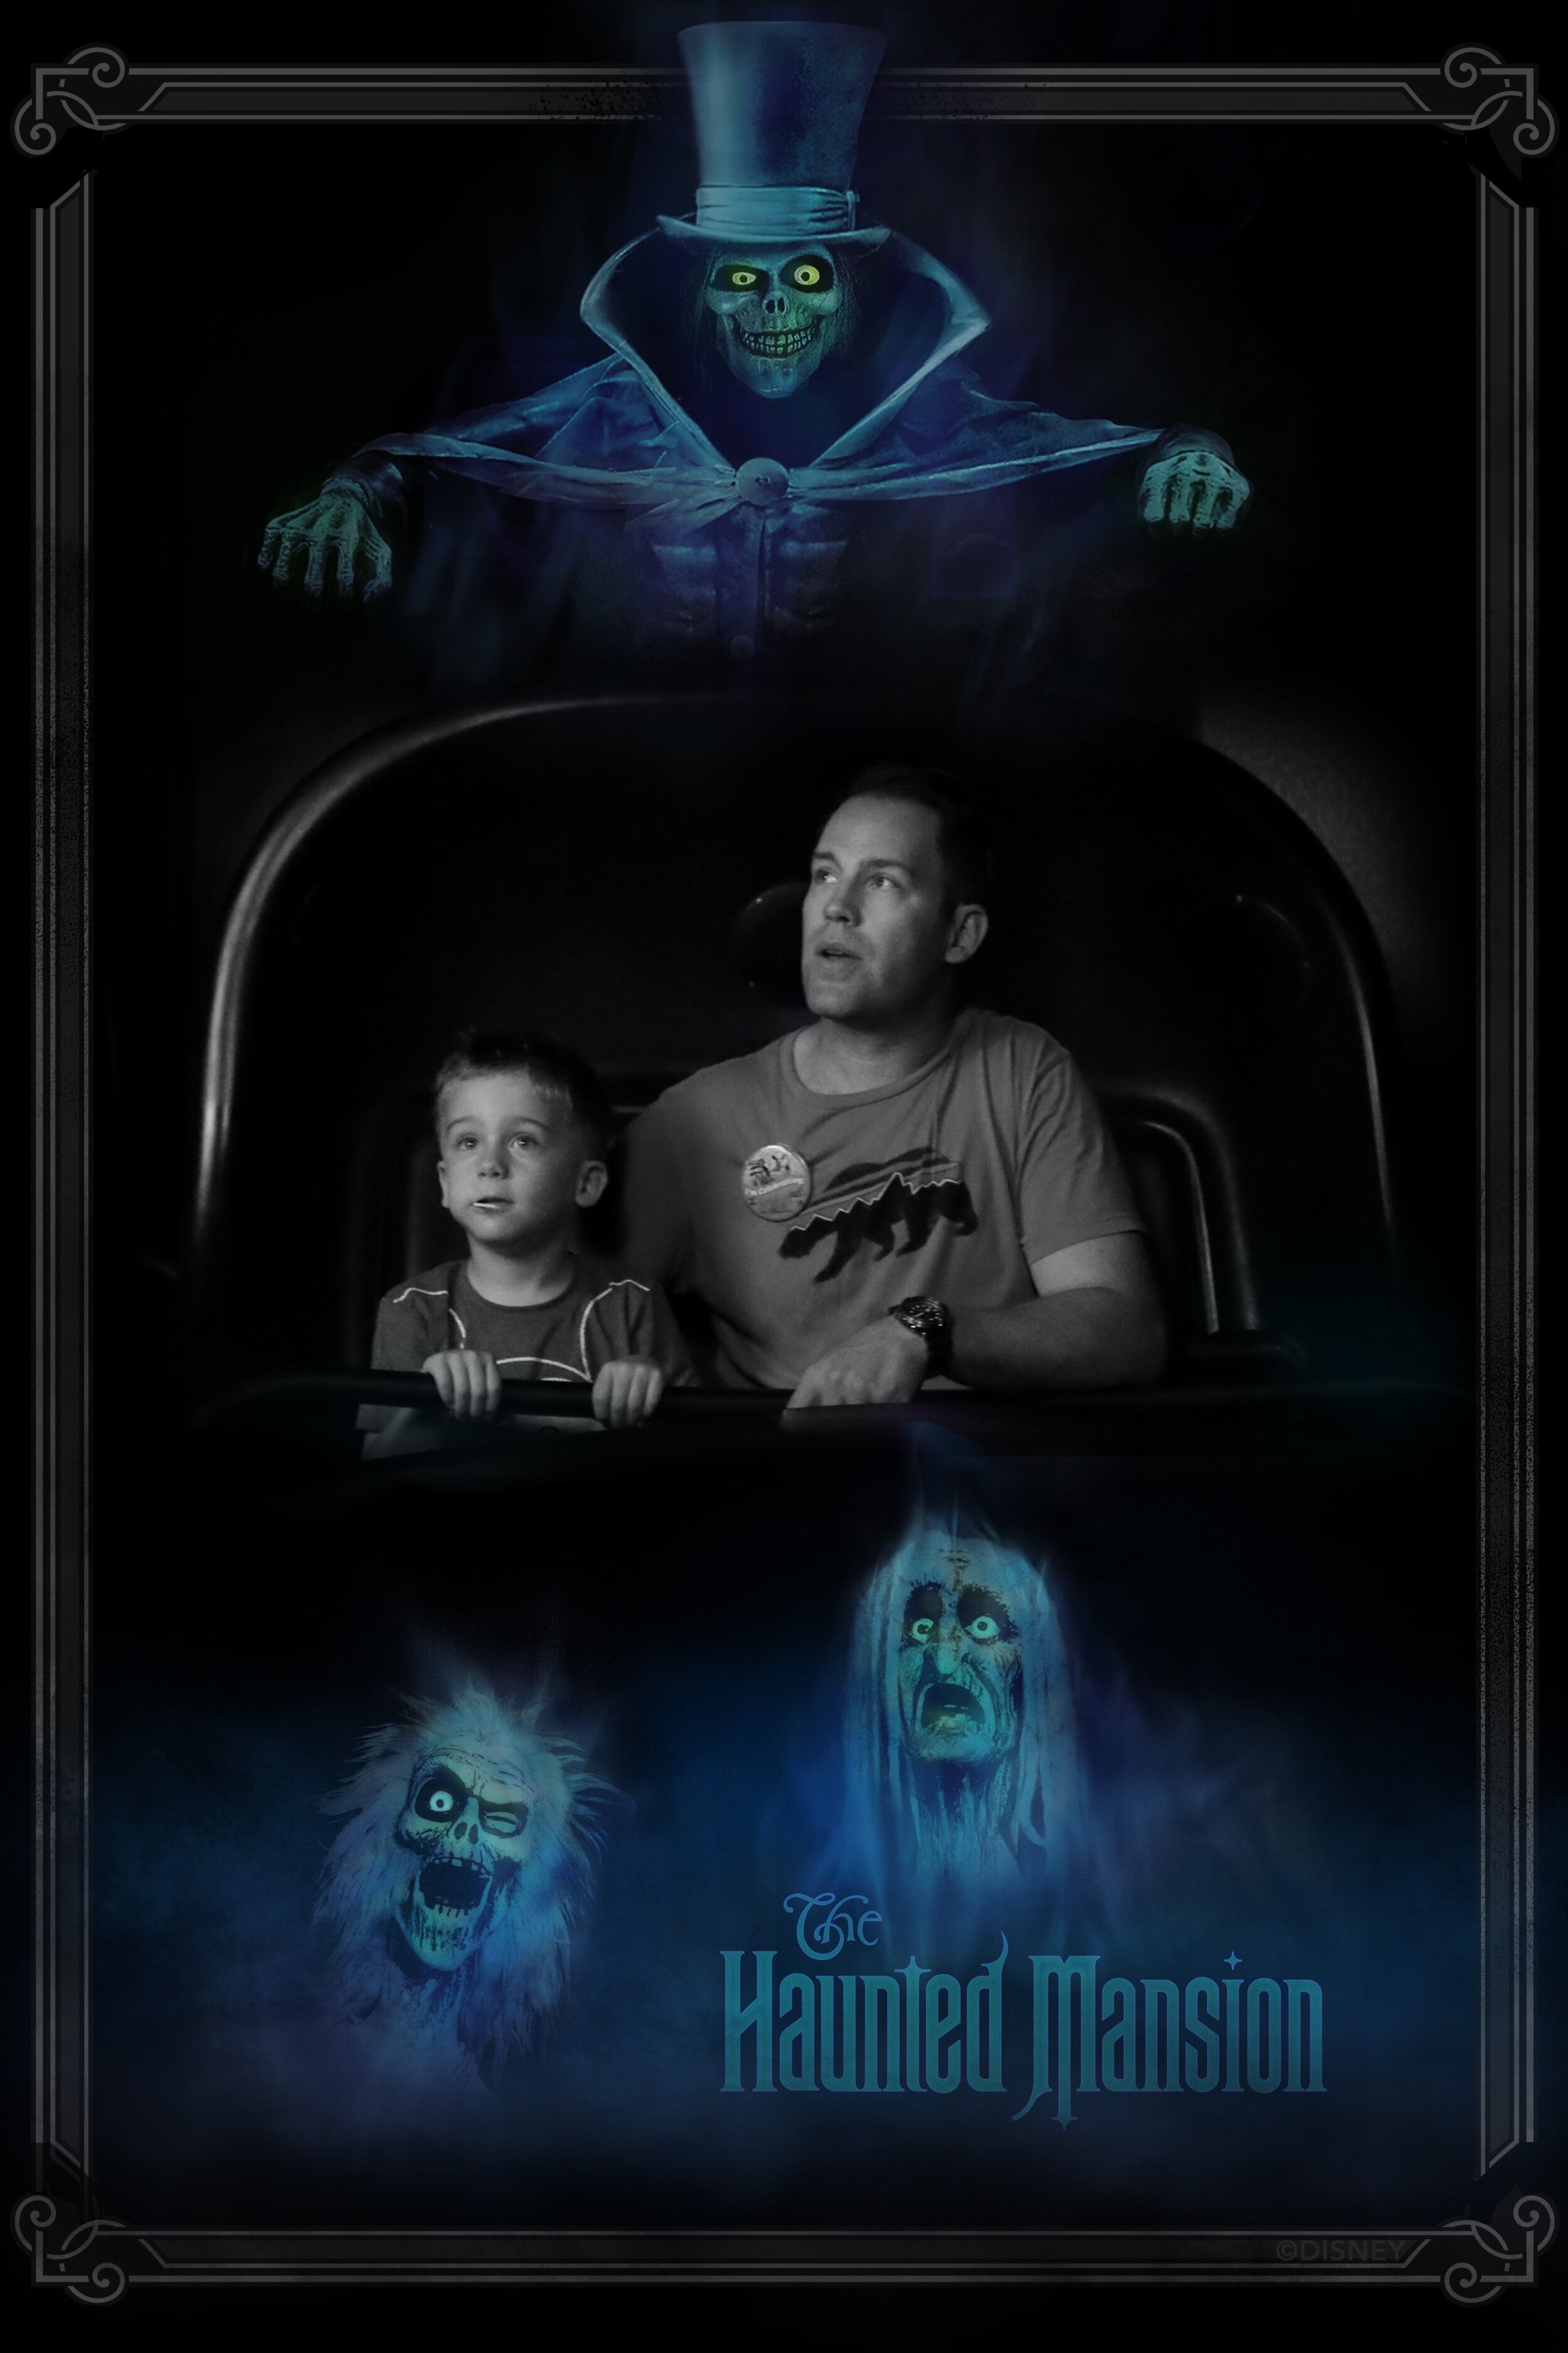 Father and Son on the Haunted Mansion ride in Magic Kingdom Disney World.